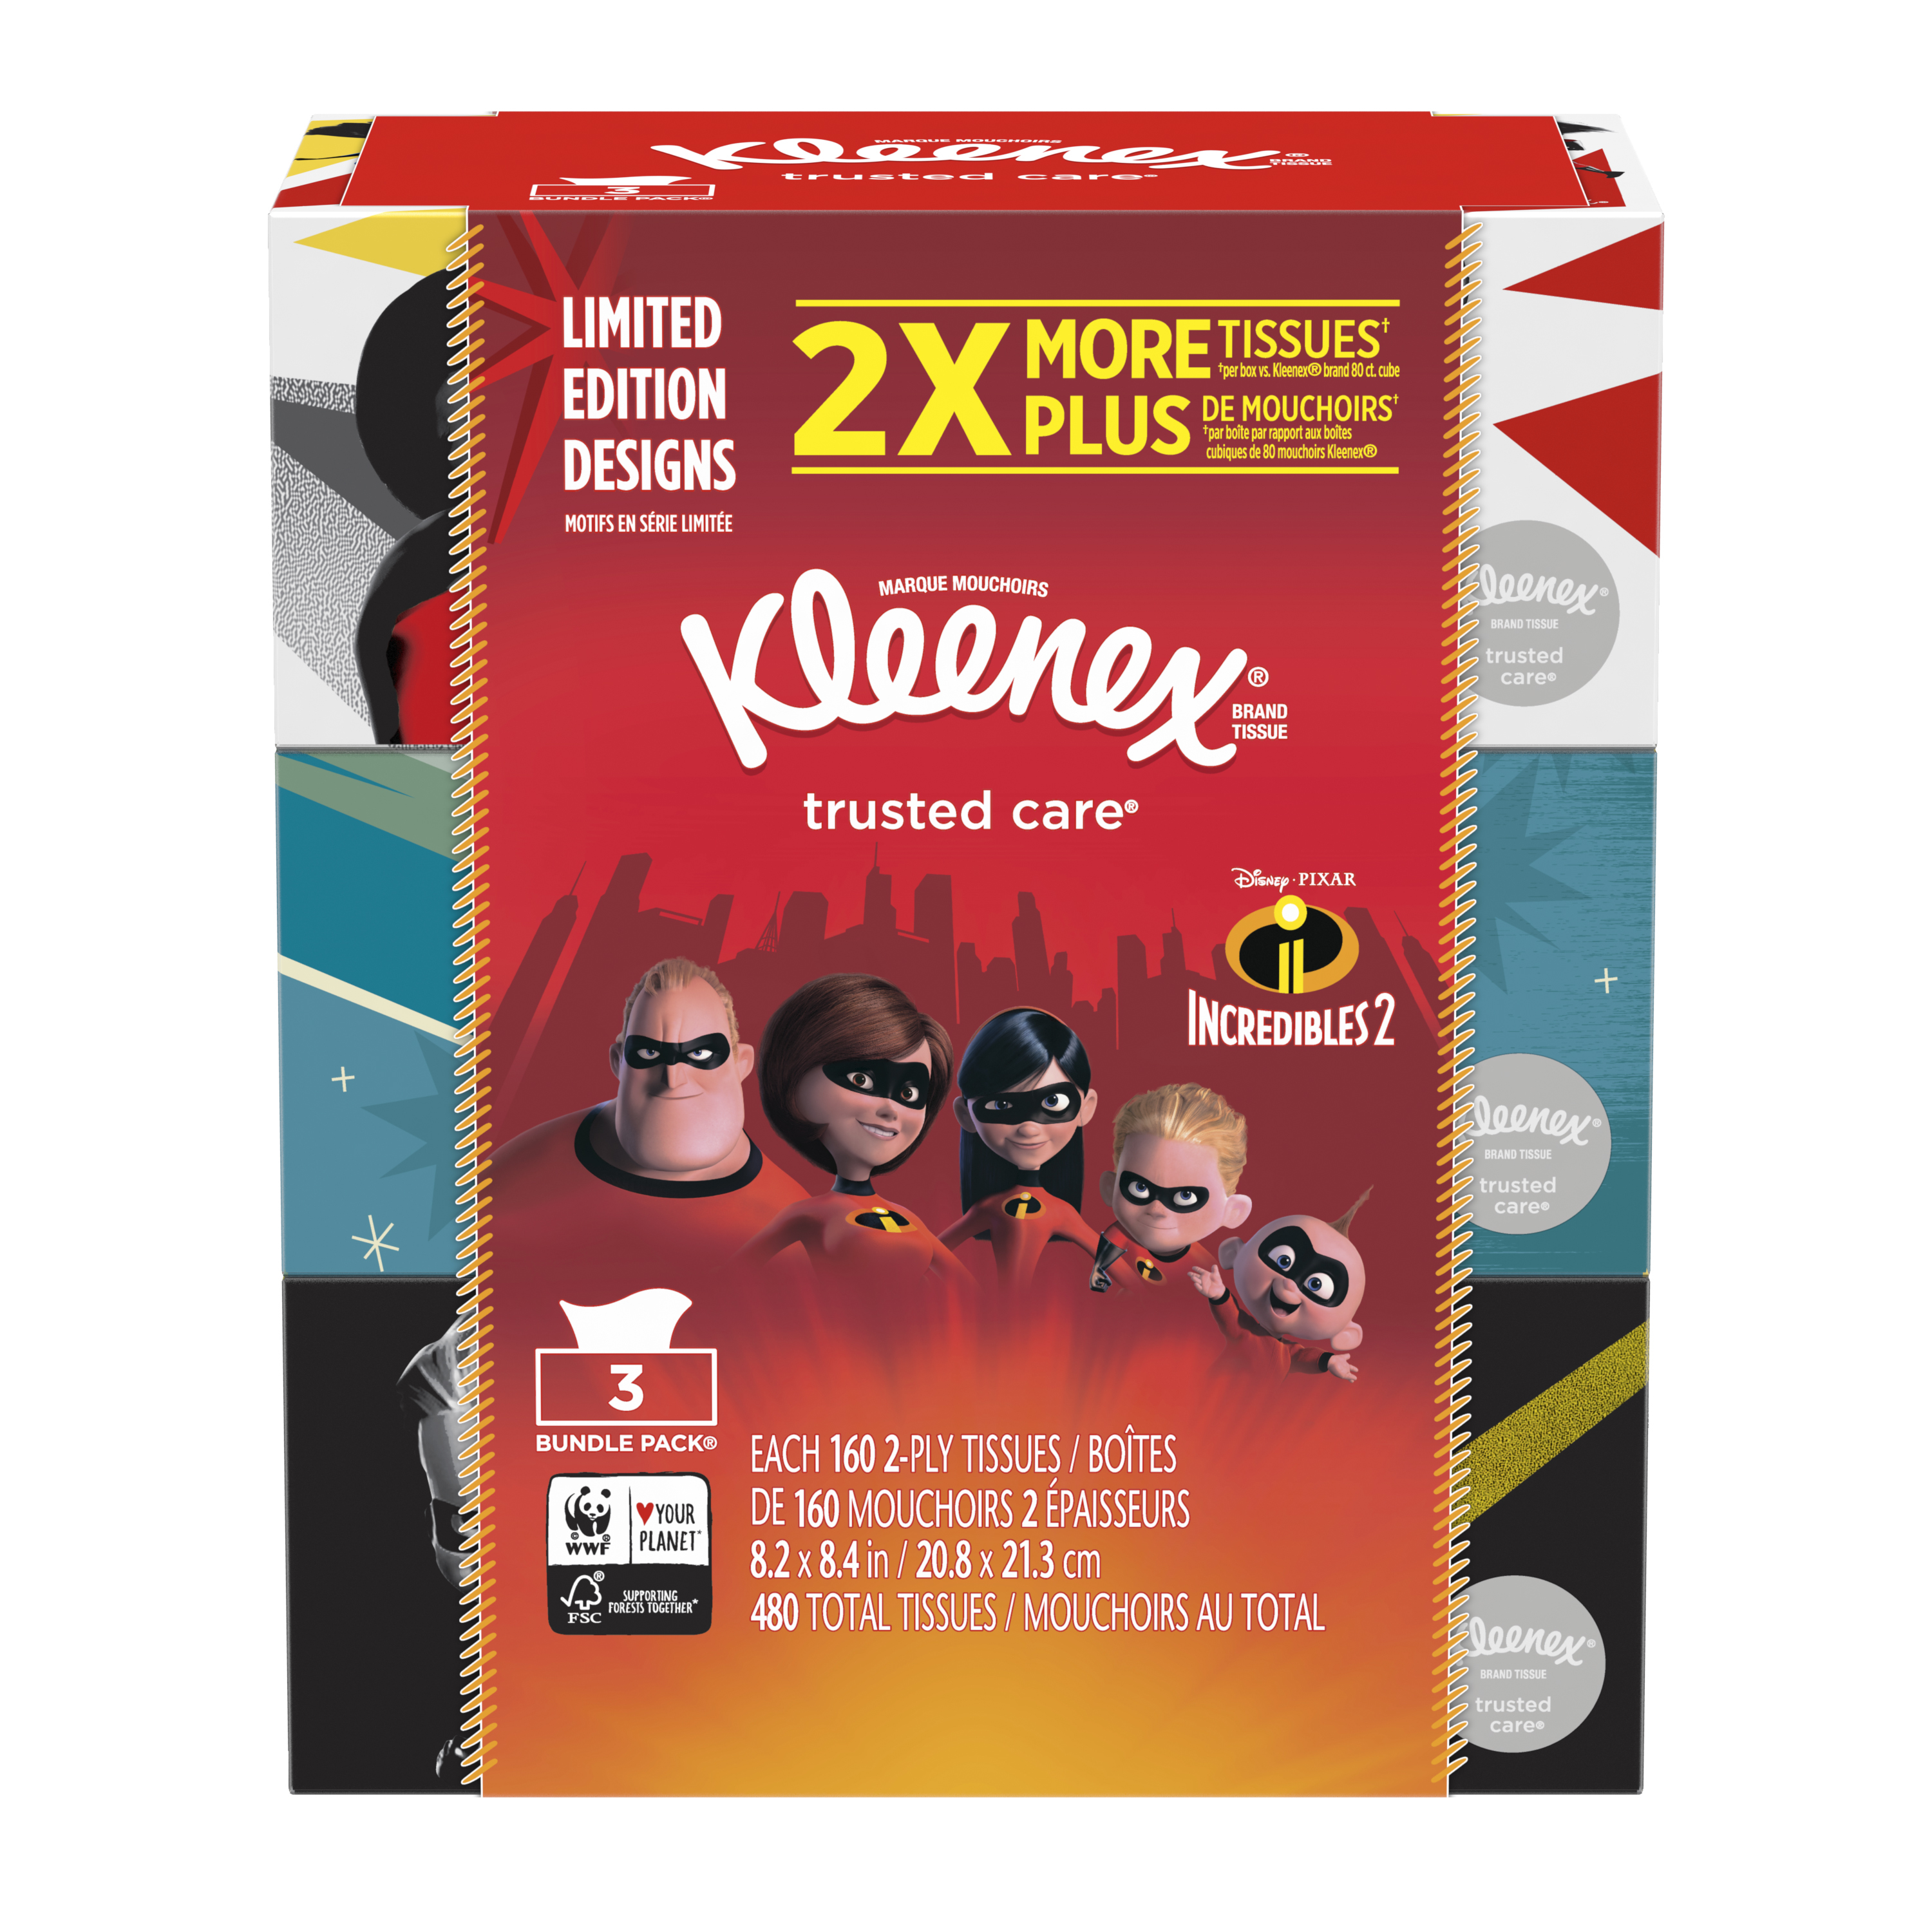 Kleenex 160 Tissues/Flat Box, 3 Packs, Trusted Care Everyday Facial Tissues